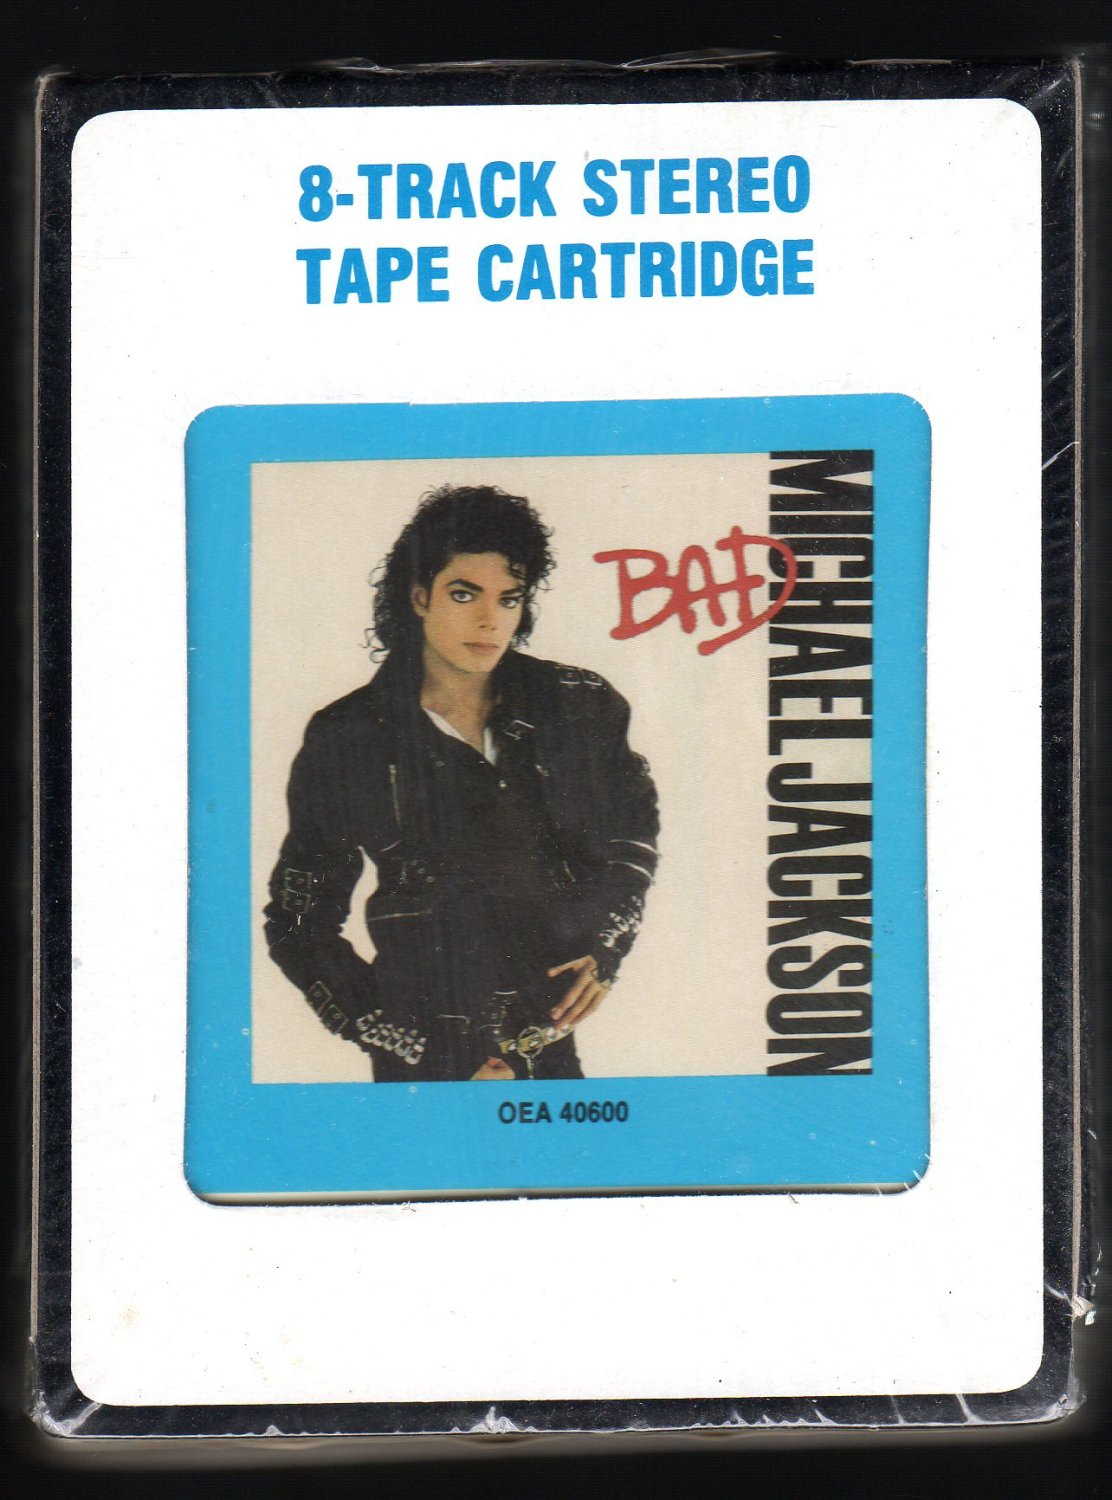 Michael Jackson - Bad 1987 CRC EPIC A32 8-TRACK TAPE